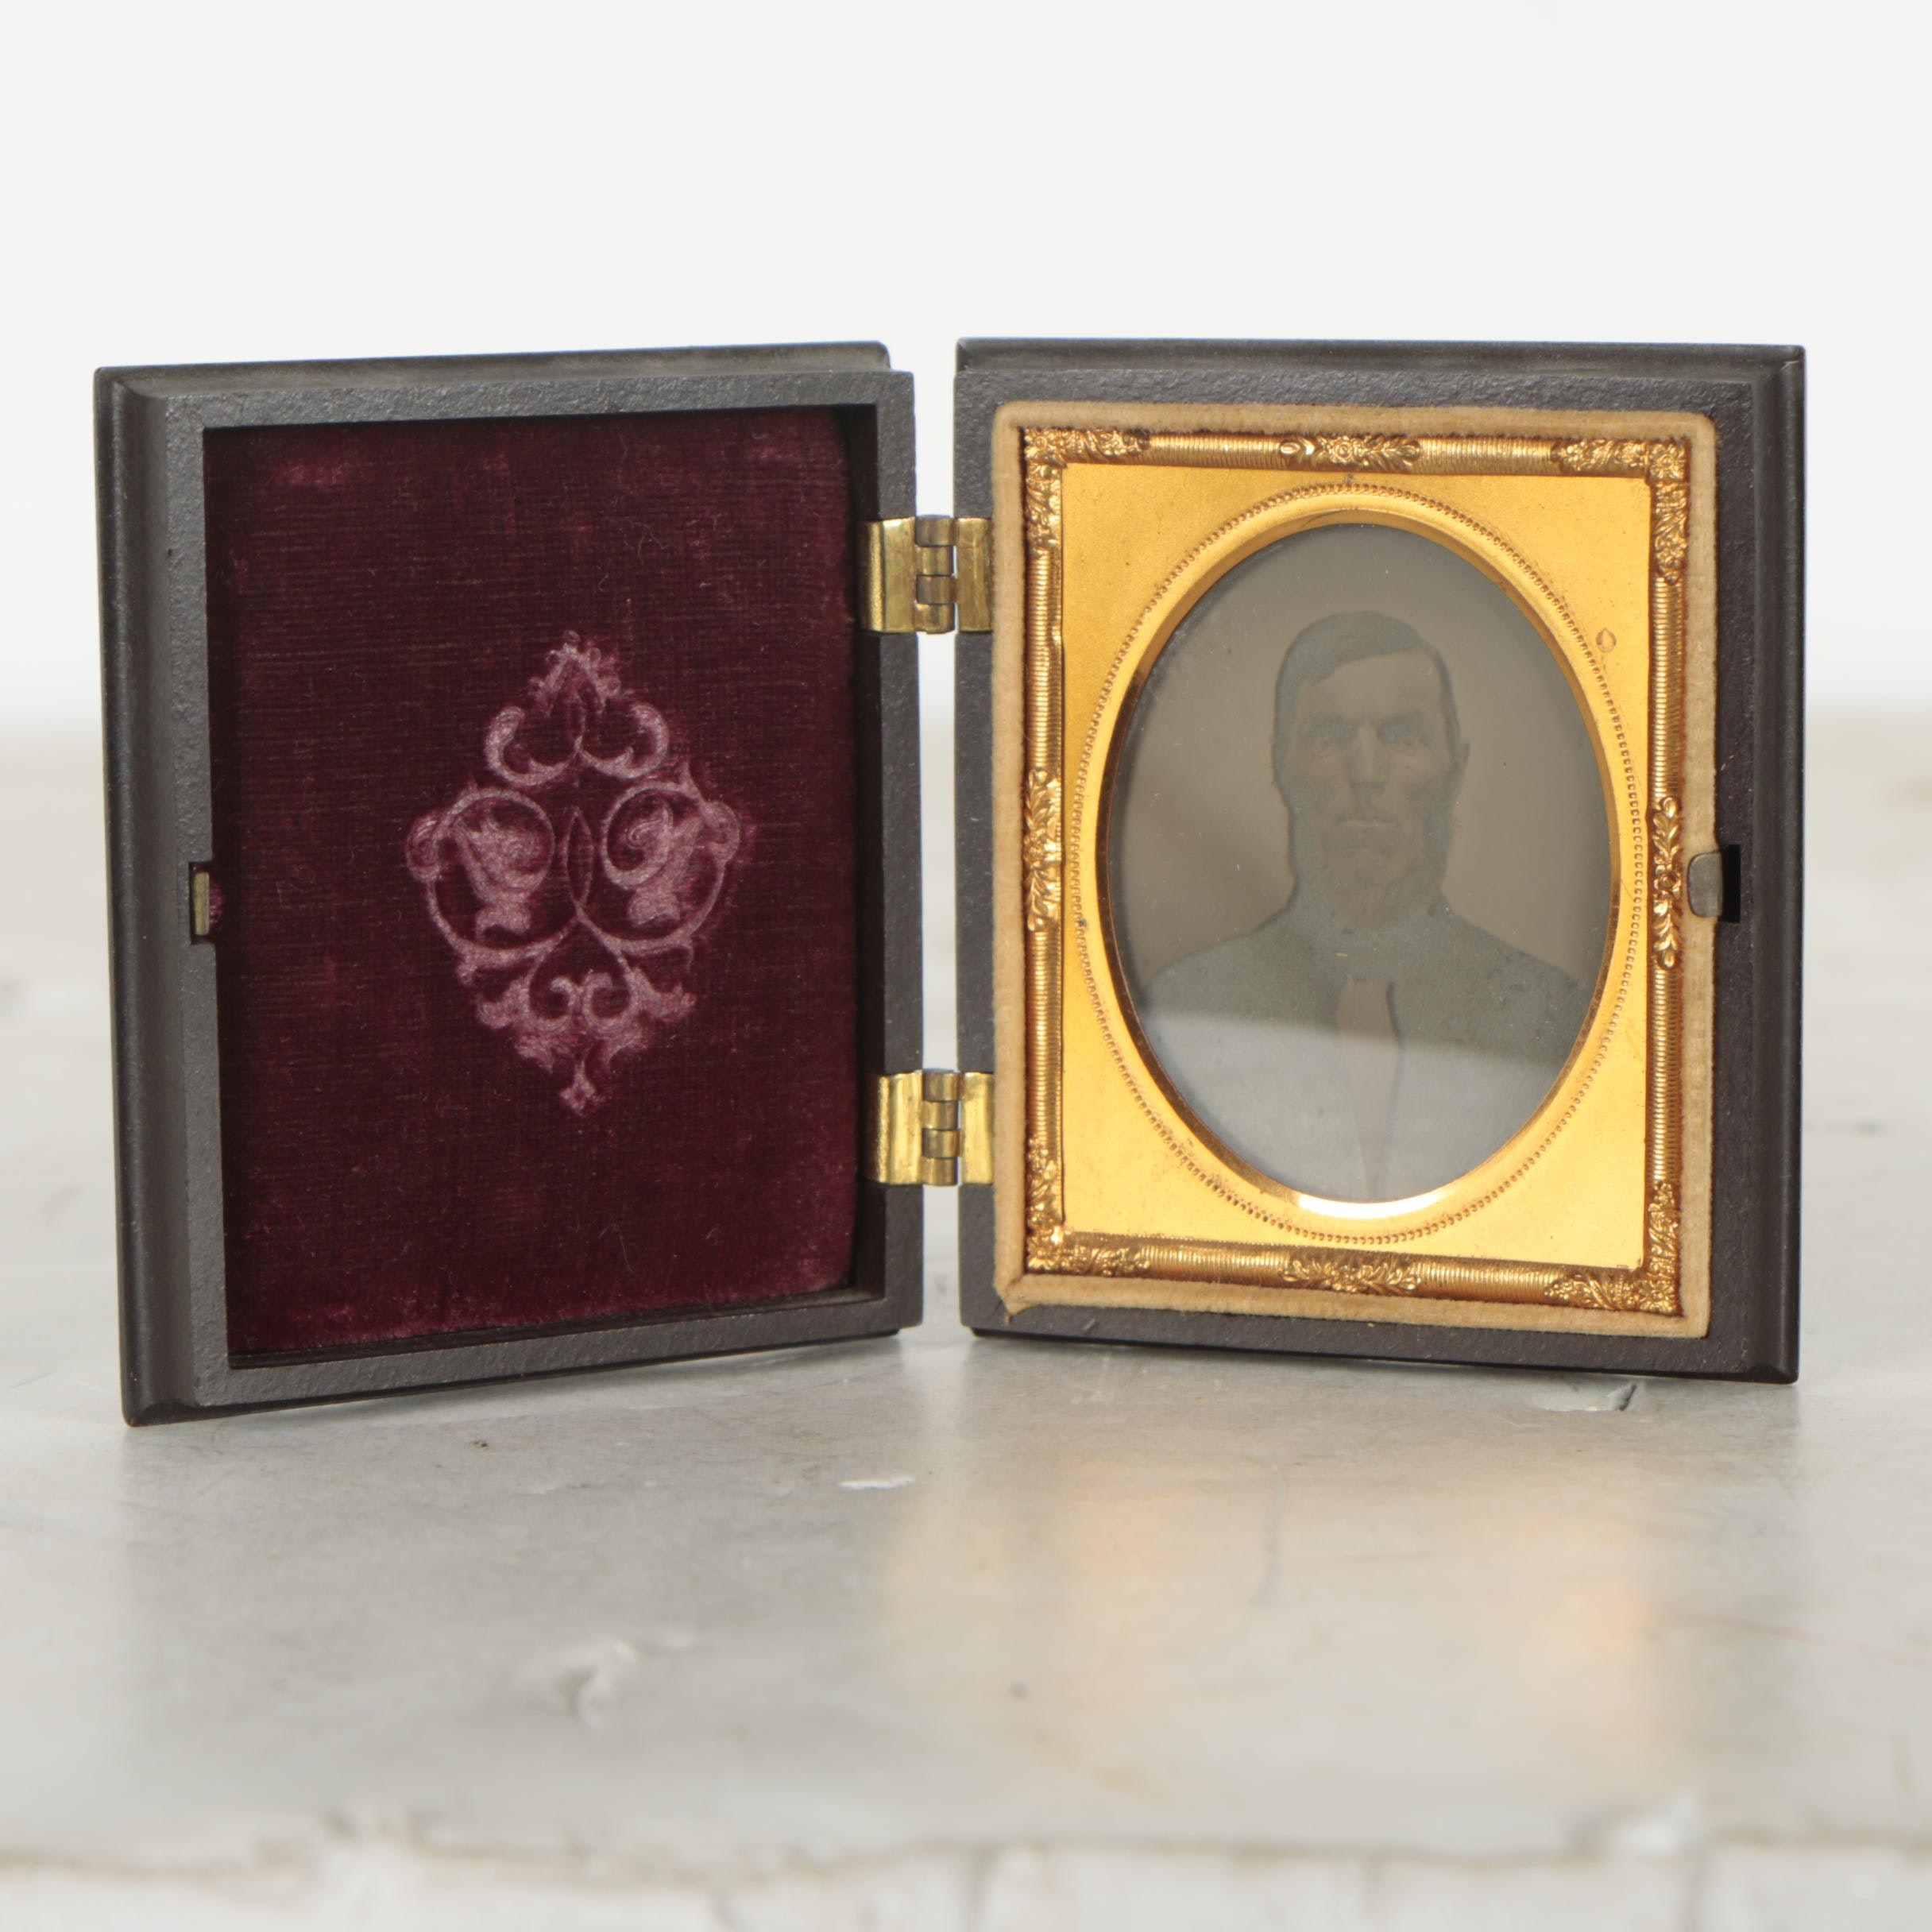 Antique Occupational Union Case with Ambrotype Portrait